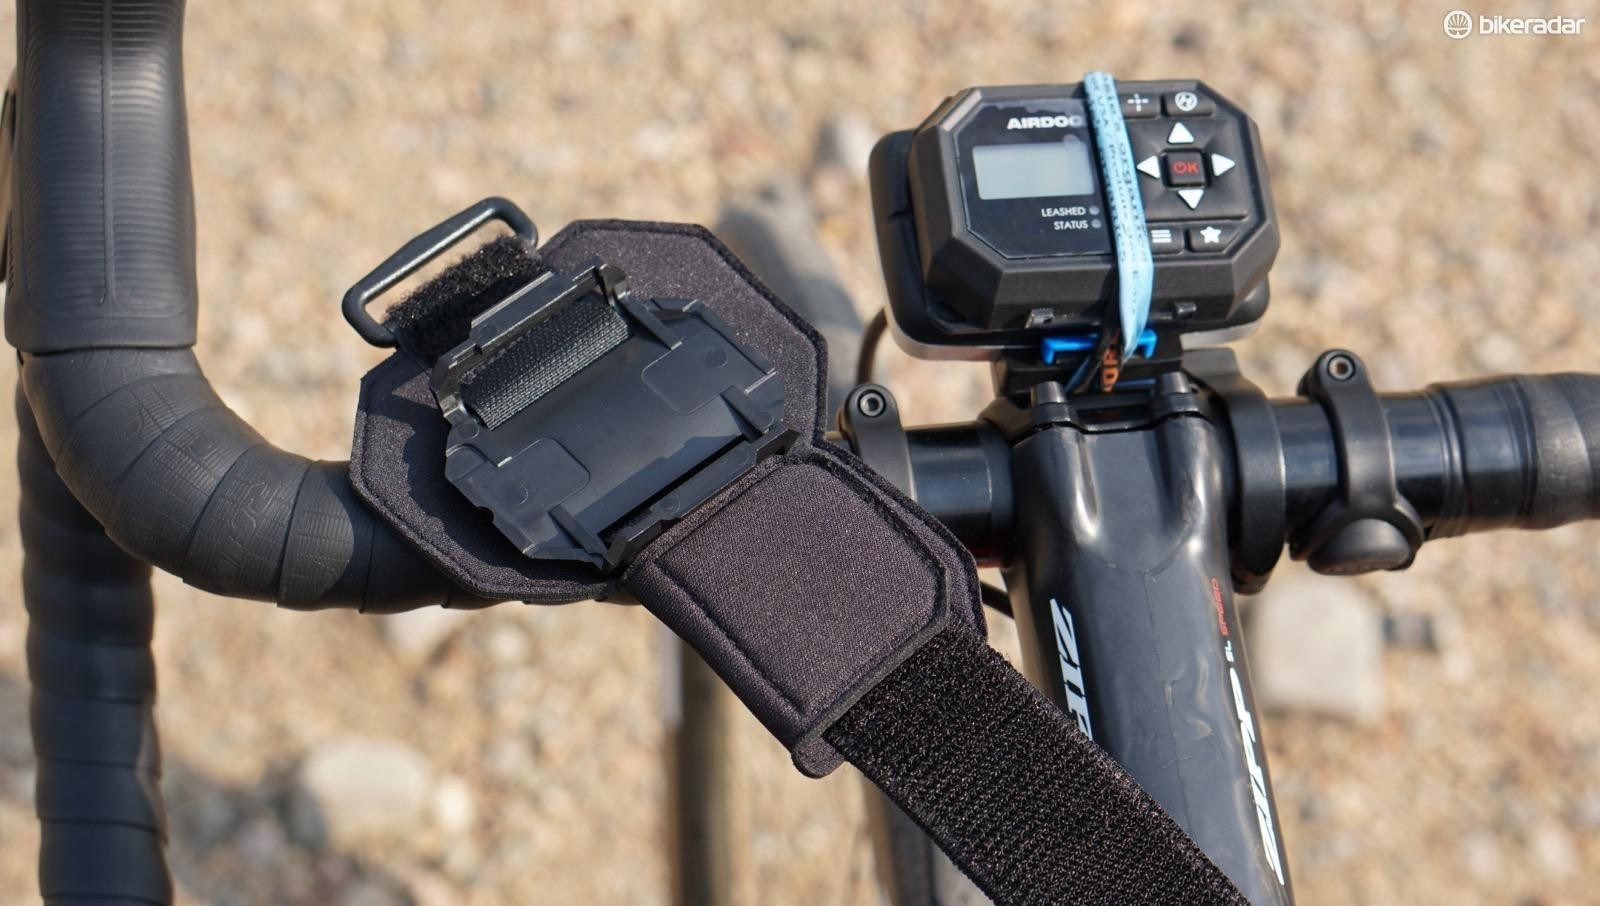 The Leash comes with this arm/wrist band, which isn't ideal for riding bikes